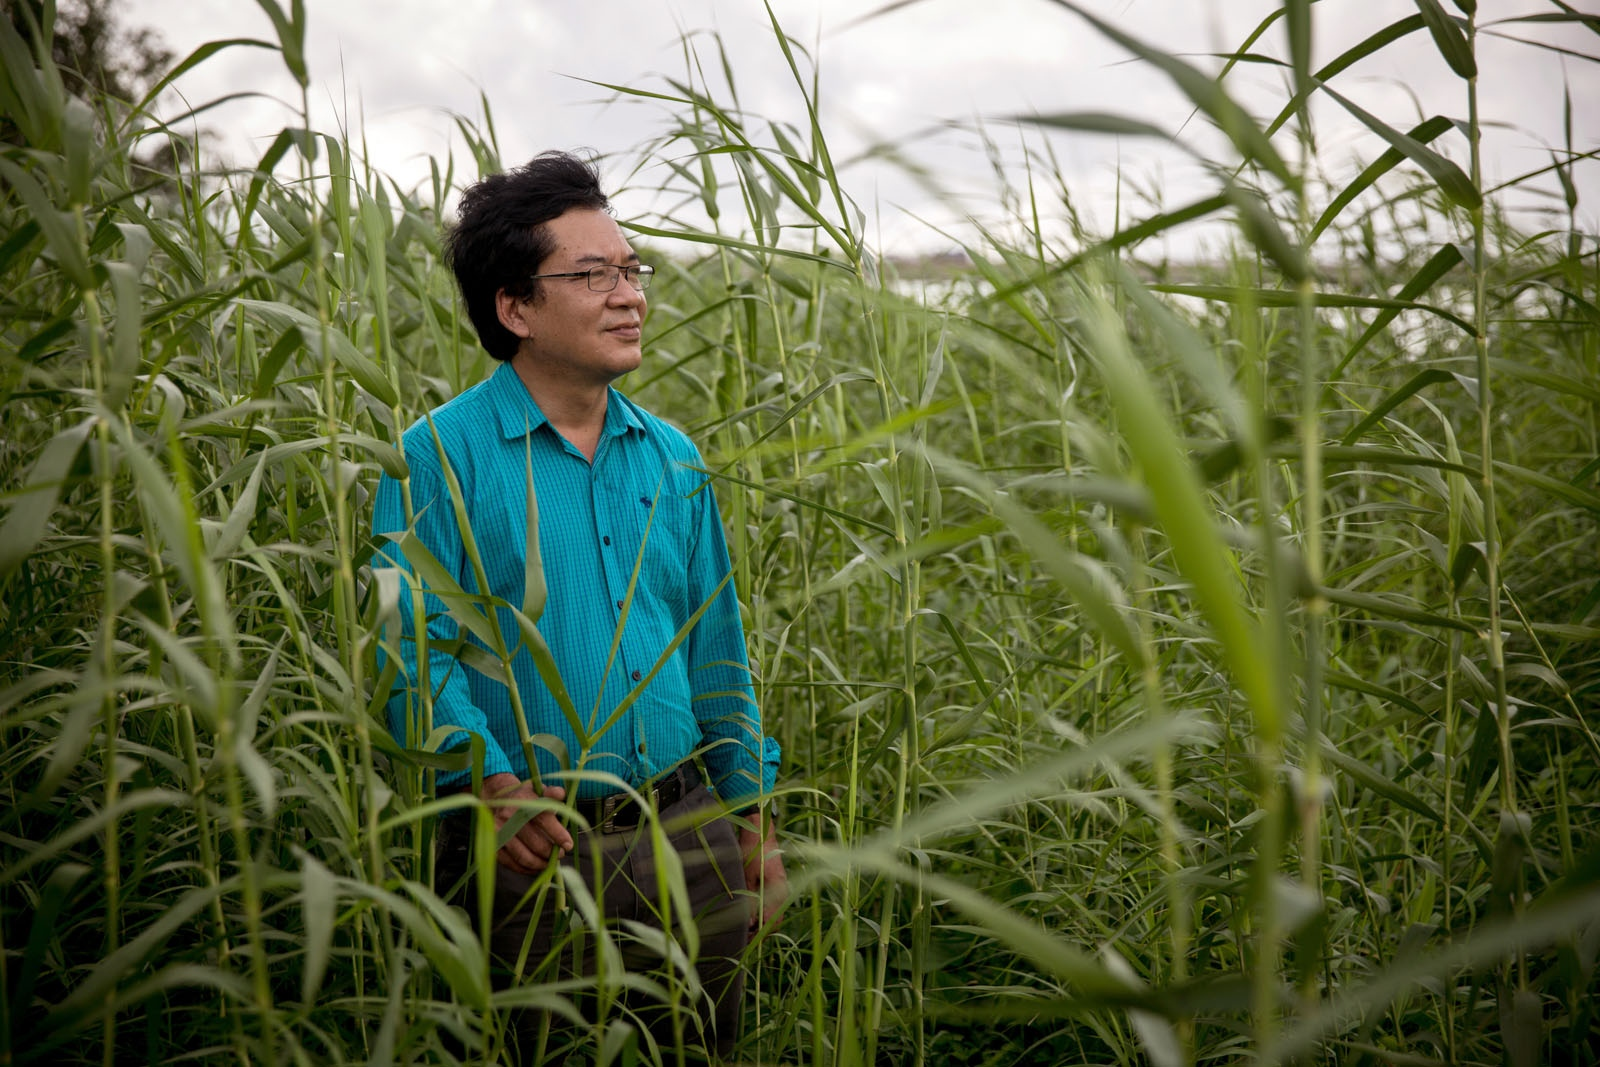 Freelance Ecologist Nguyen Huu Thien who was involved in the Mekong River Commission stands on a grassy island located in the middle of rivers surrounding Can Tho city.